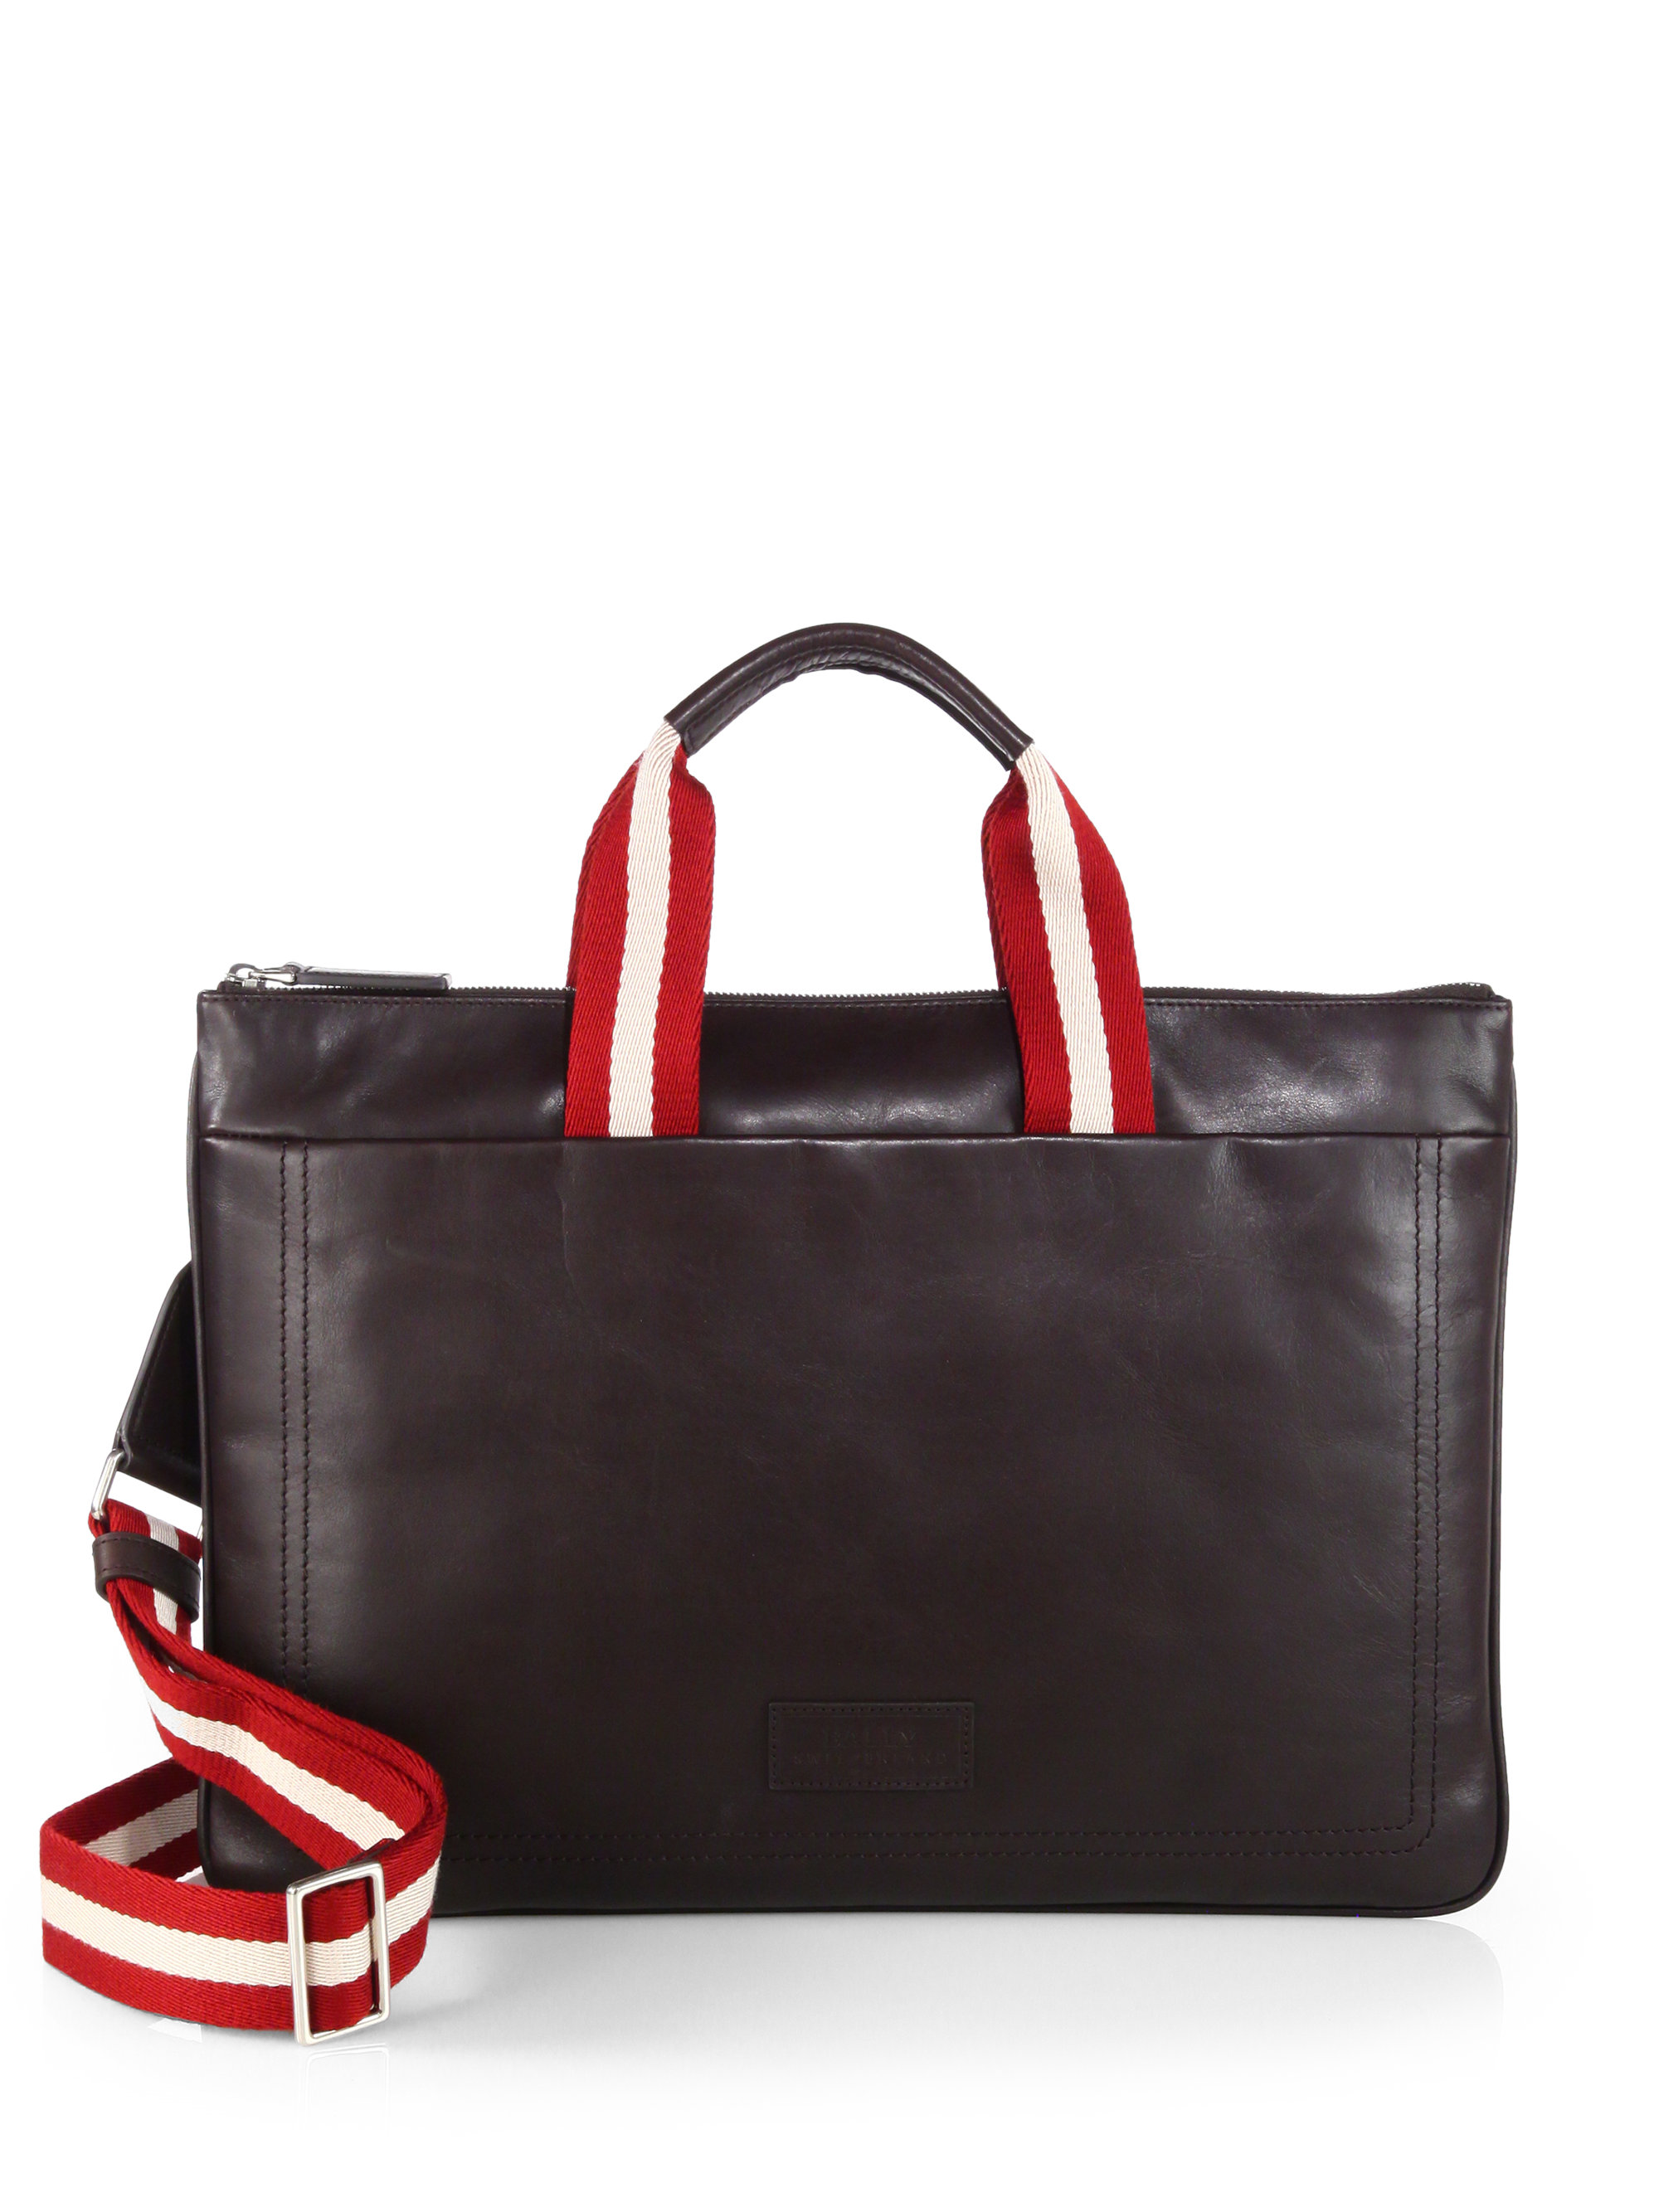 Lyst Bally Tigan Flat Leather Briefcase In Brown For Men